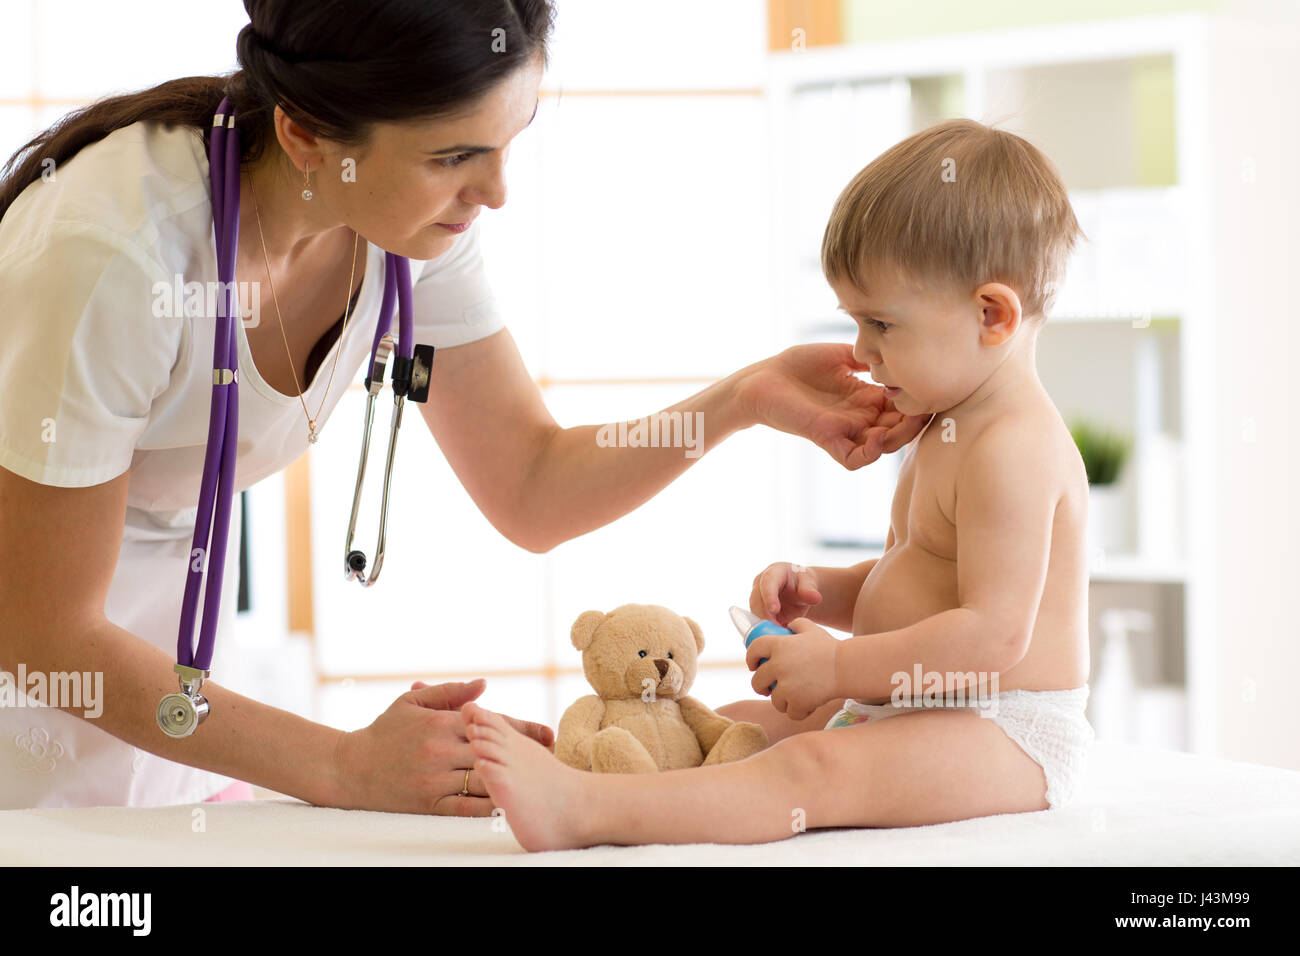 Doctor paediatrician checking boy's neck - Stock Image